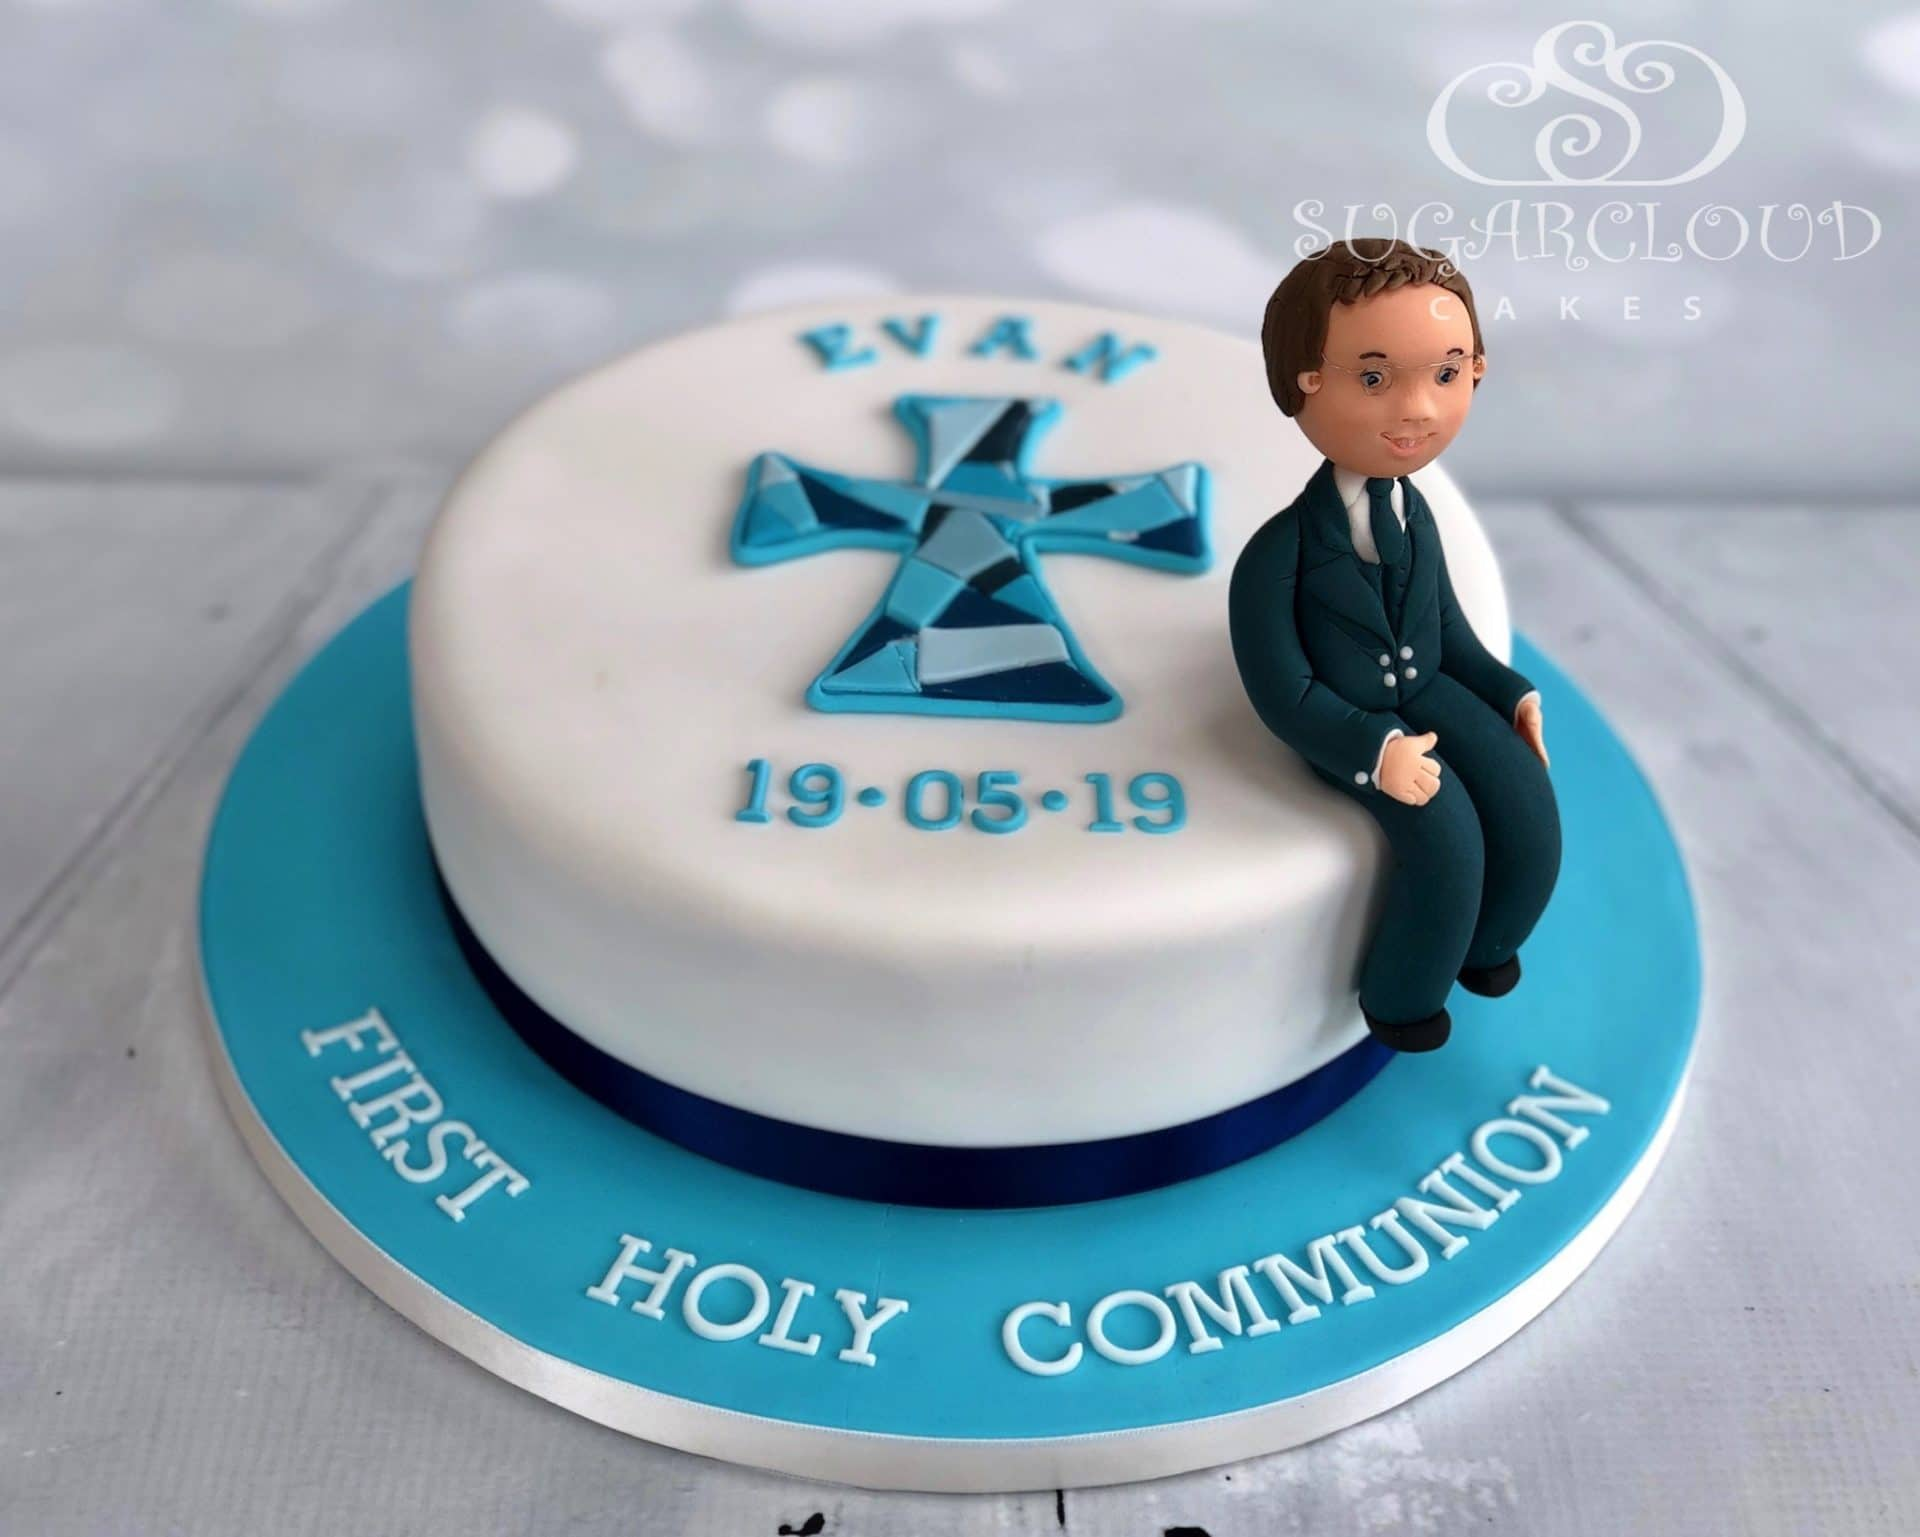 Evan Holy Communion Cake